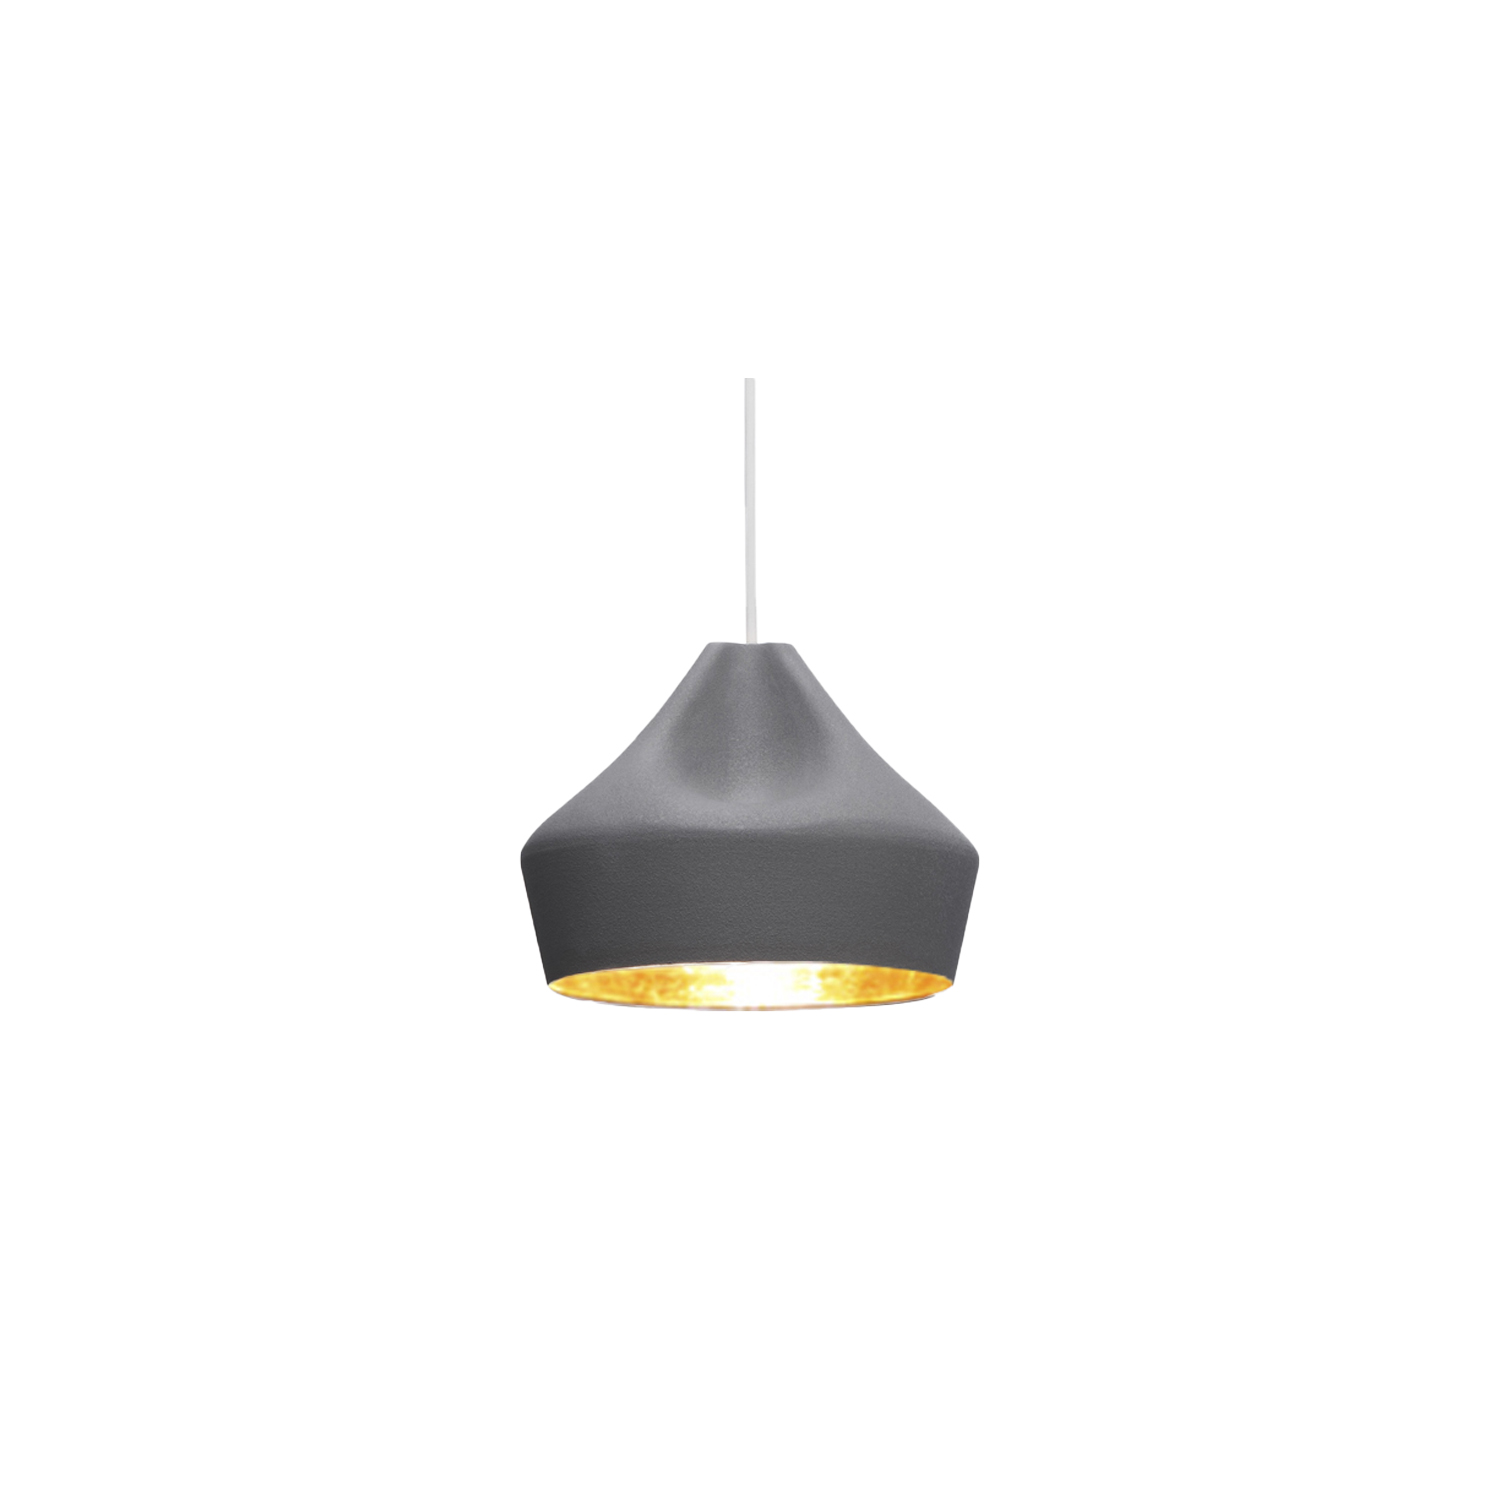 Pleat Box 24 Pendant Light - The idea behind the Pleat Box is a sophisticated combination between a digitally designed crease in a piece of cloth and a silhouette that is applied to a ceramic base. The outer part of the lamp is offered in white ceramic, brown, black, terracotta, and grey– the direct result of recycling different enamels. The interior is available in brilliant white enamel, which enhances the luminous light from the lamp, or 24k gold, which generates an extremely warm light. The Pleat Box collection is now available with an integrated LED technology, which projects indirect light and prevents glare. The cord length is 200cm. Please enquire for more information.  | Matter of Stuff